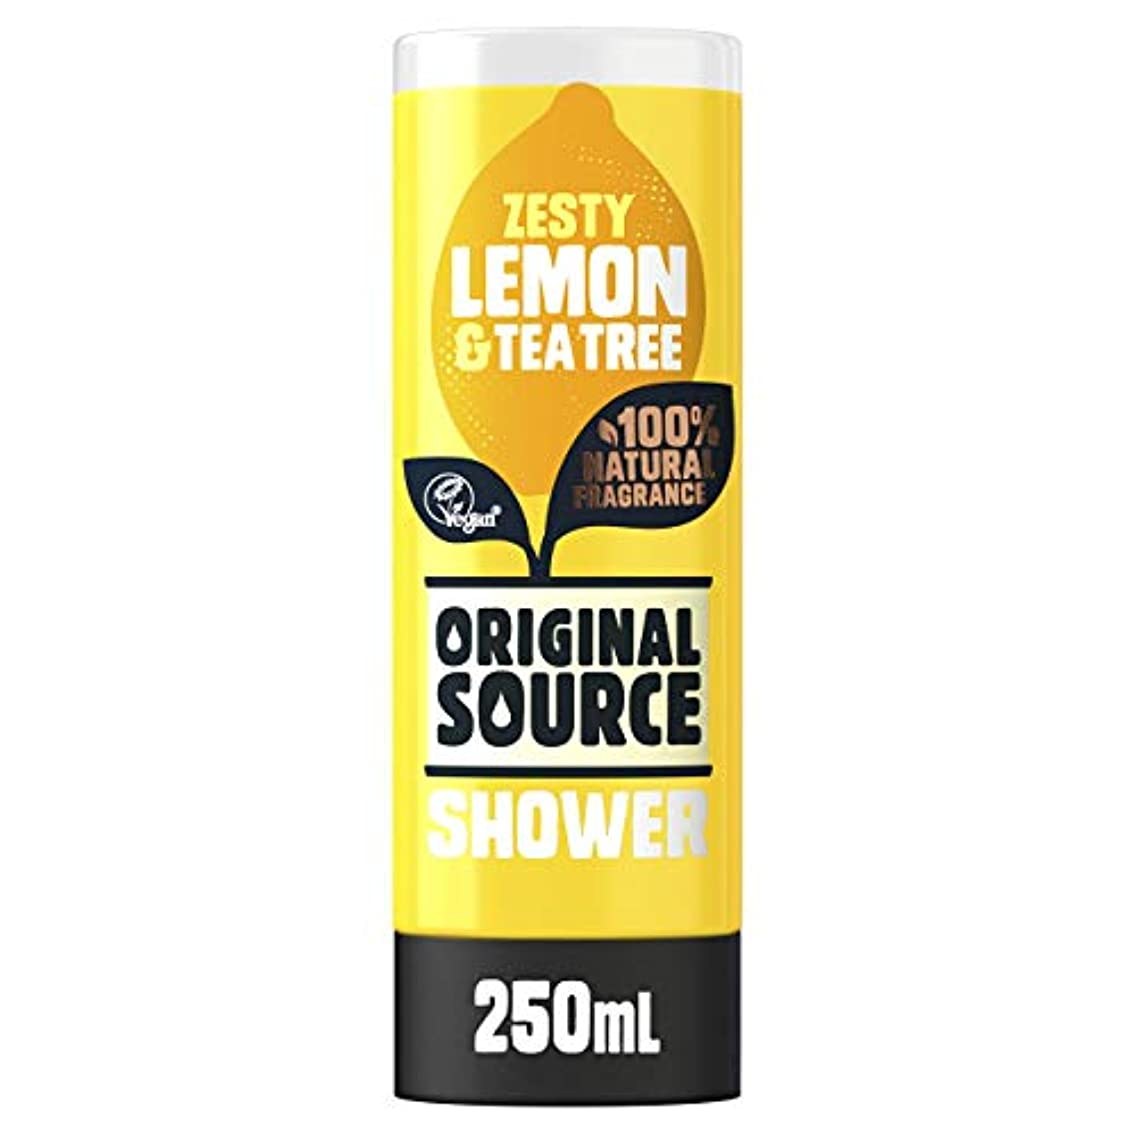 夜間予防接種優雅Cussons Lemon and Tea Tree Original Source Shower Gel by PZ CUSSONS (UK) LTD